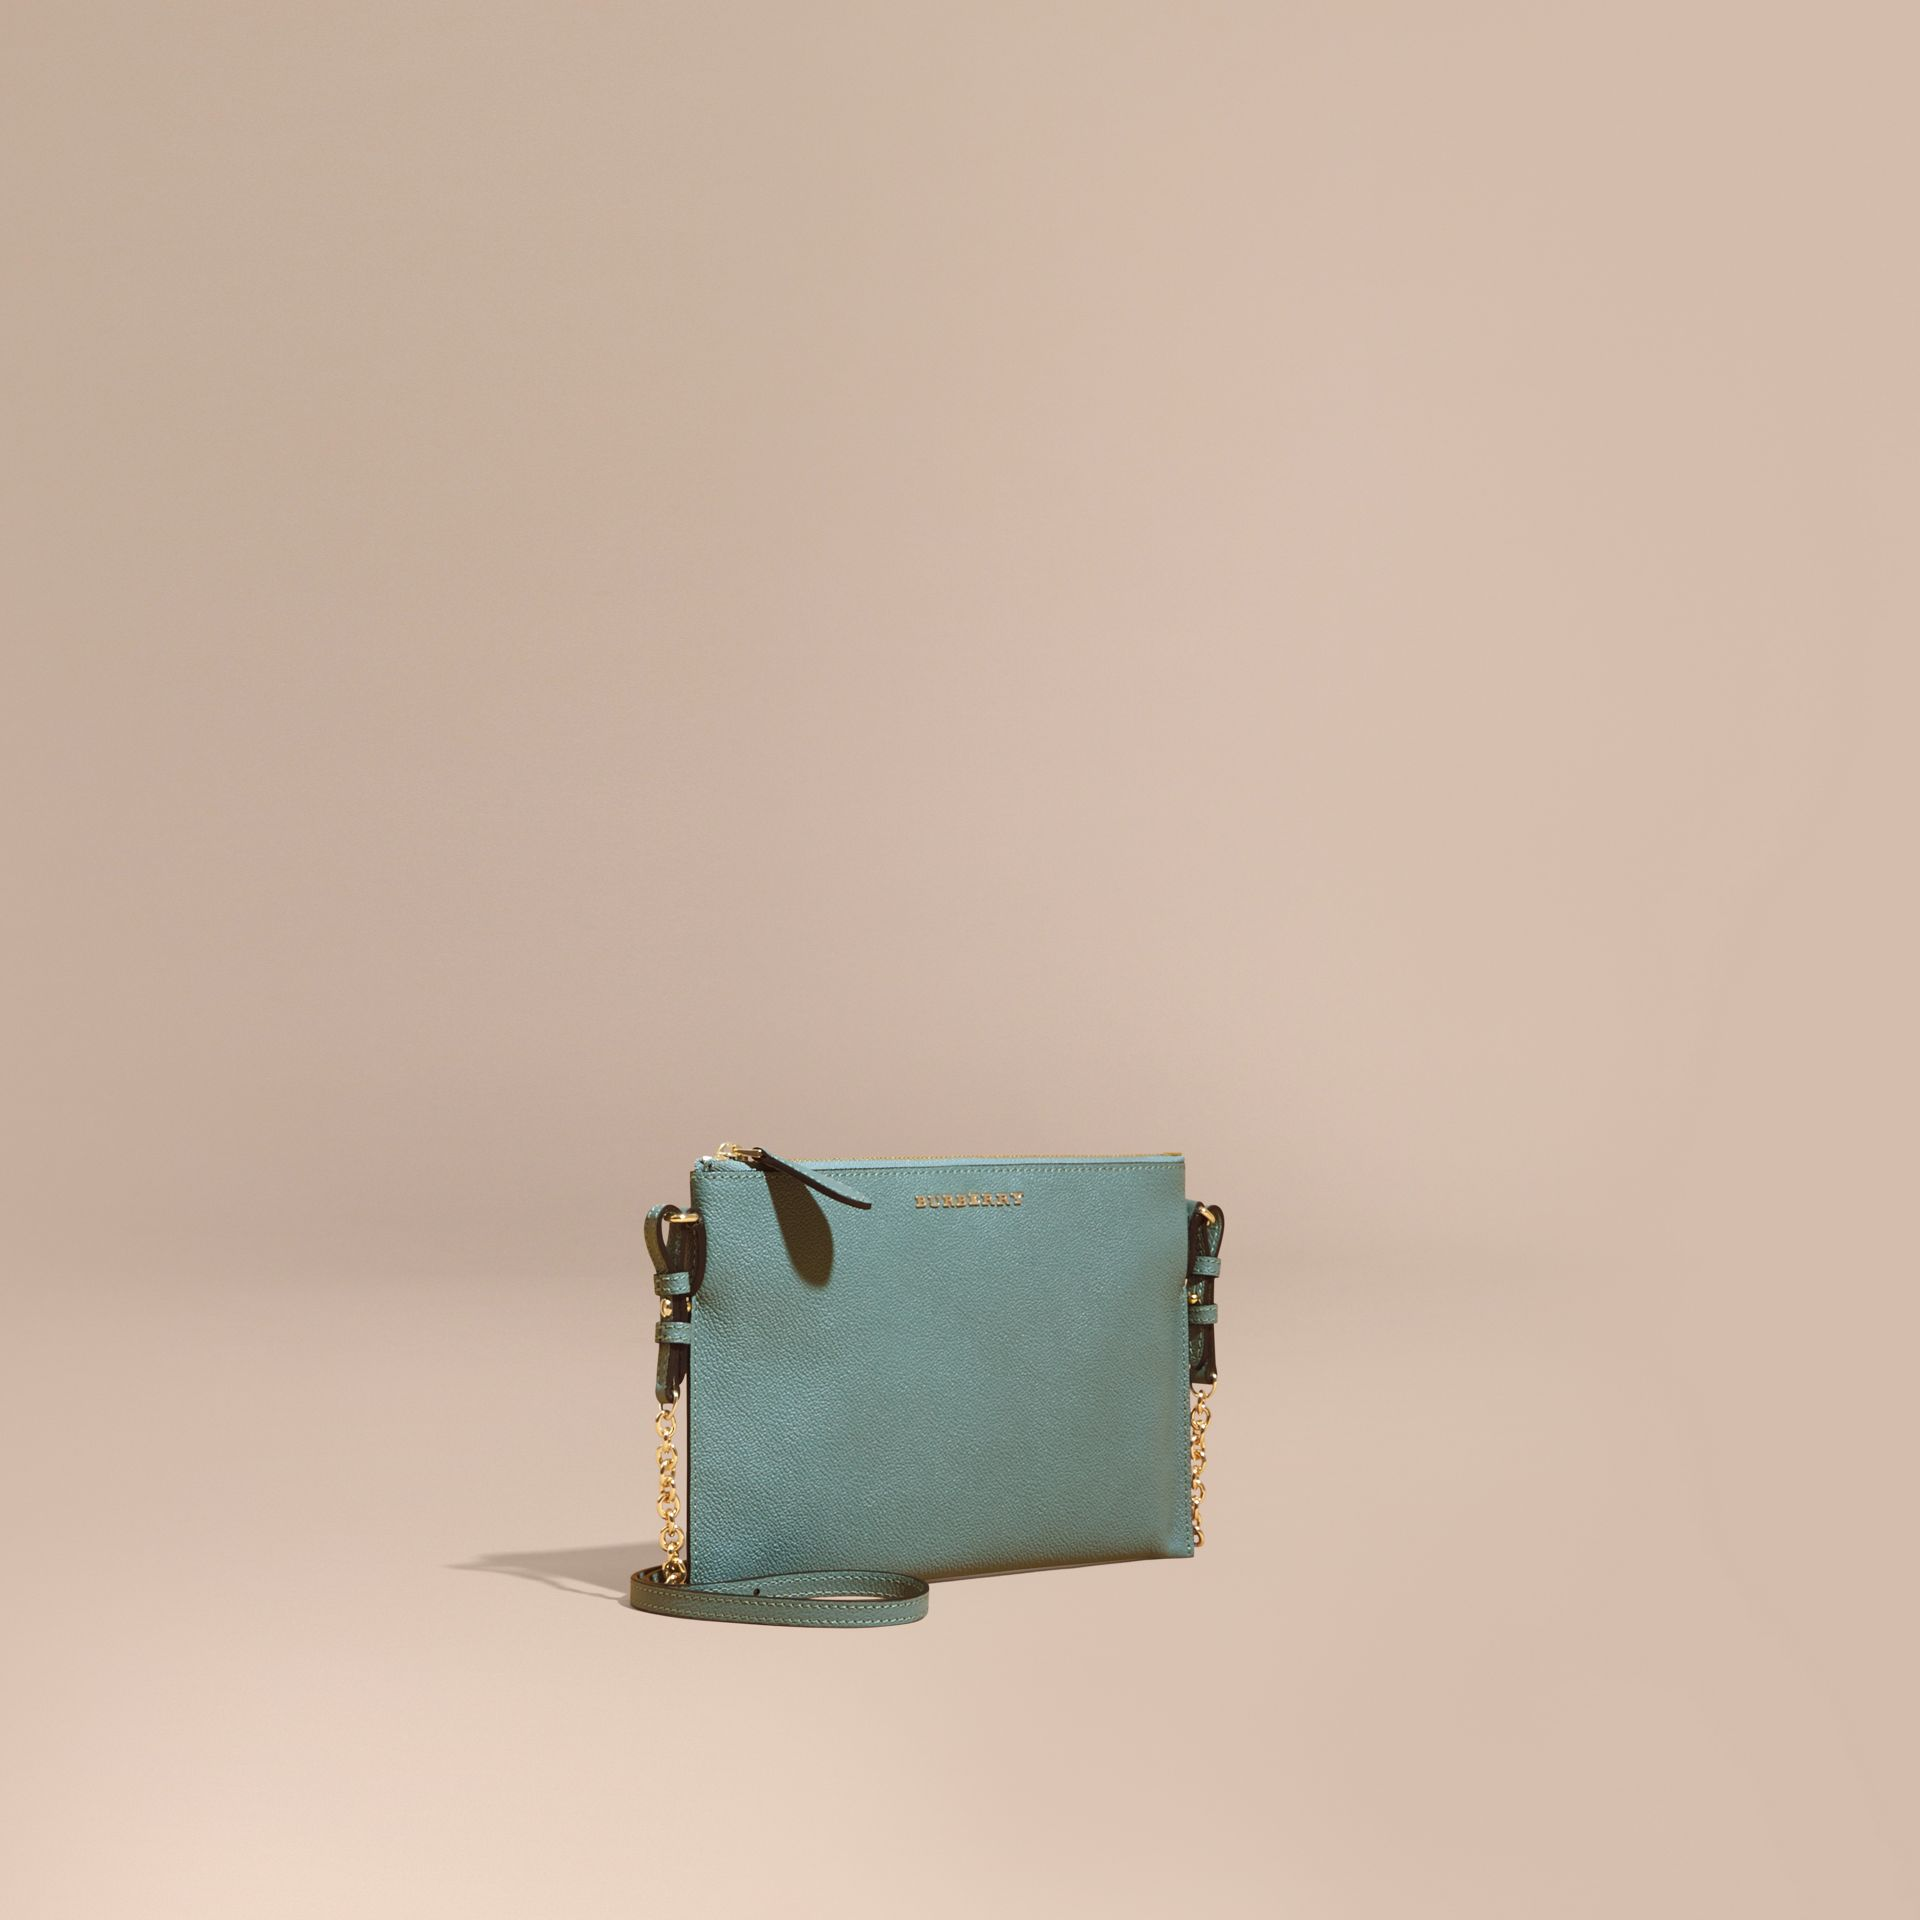 Eucalyptus green Leather Clutch Bag with Check Lining Eucalyptus Green - gallery image 1